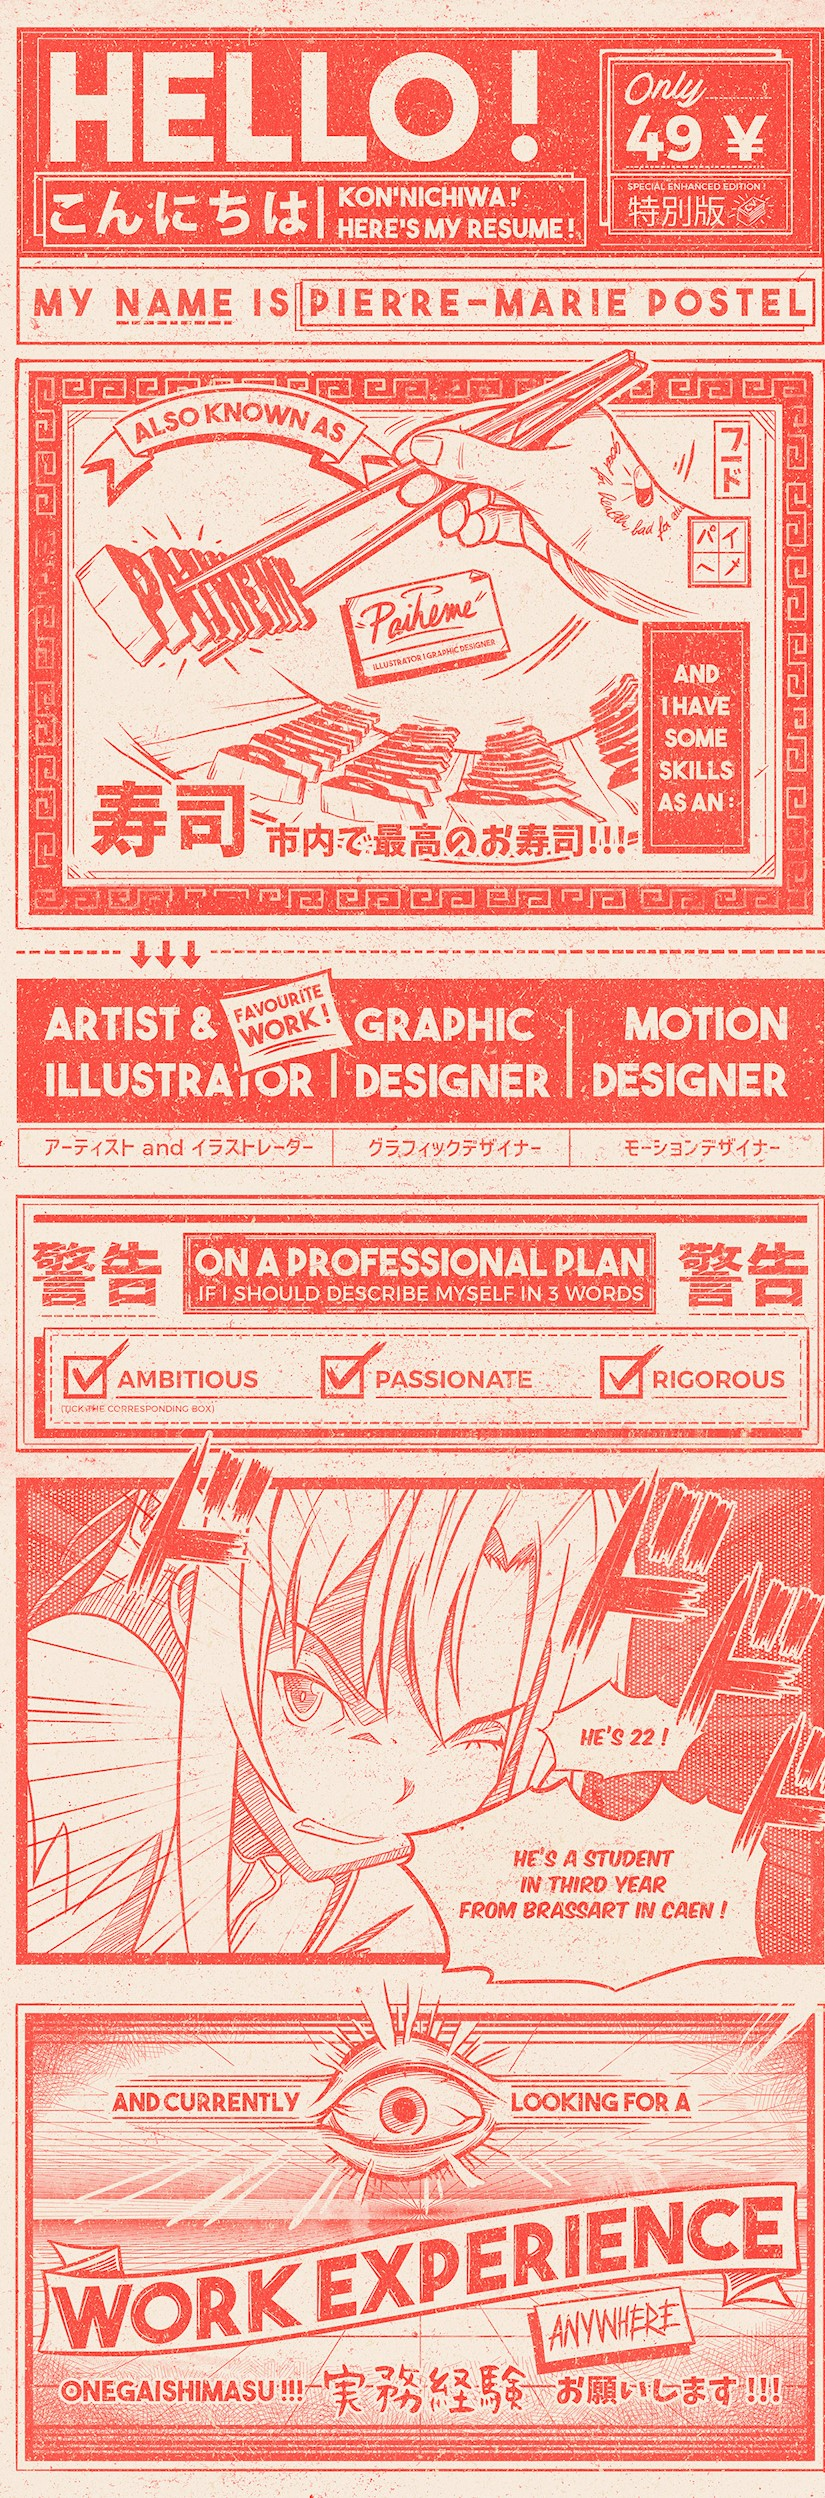 creative graphic designer resume examples templates onedesblog content anime sample Resume Graphic Designer Resume Content